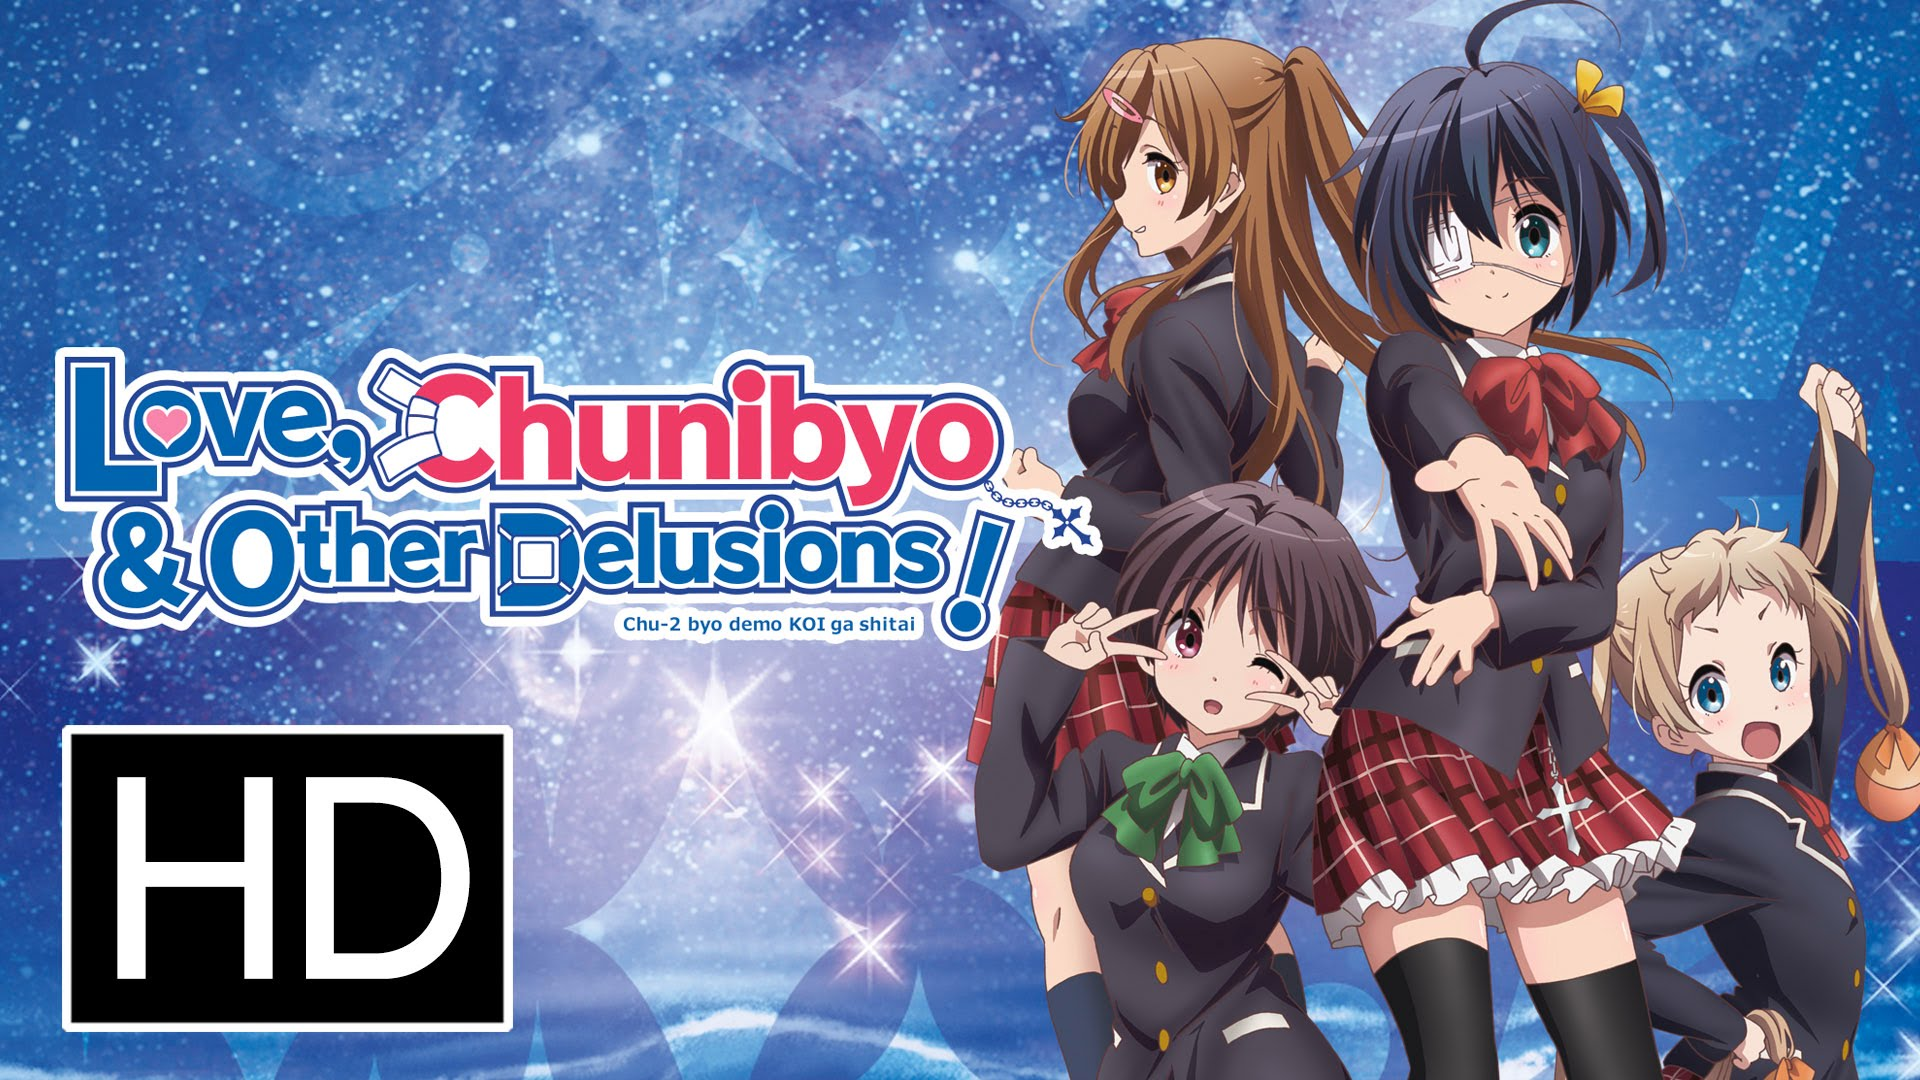 Love Chunibyo Other Delusions Wallpapers Anime Hq Love